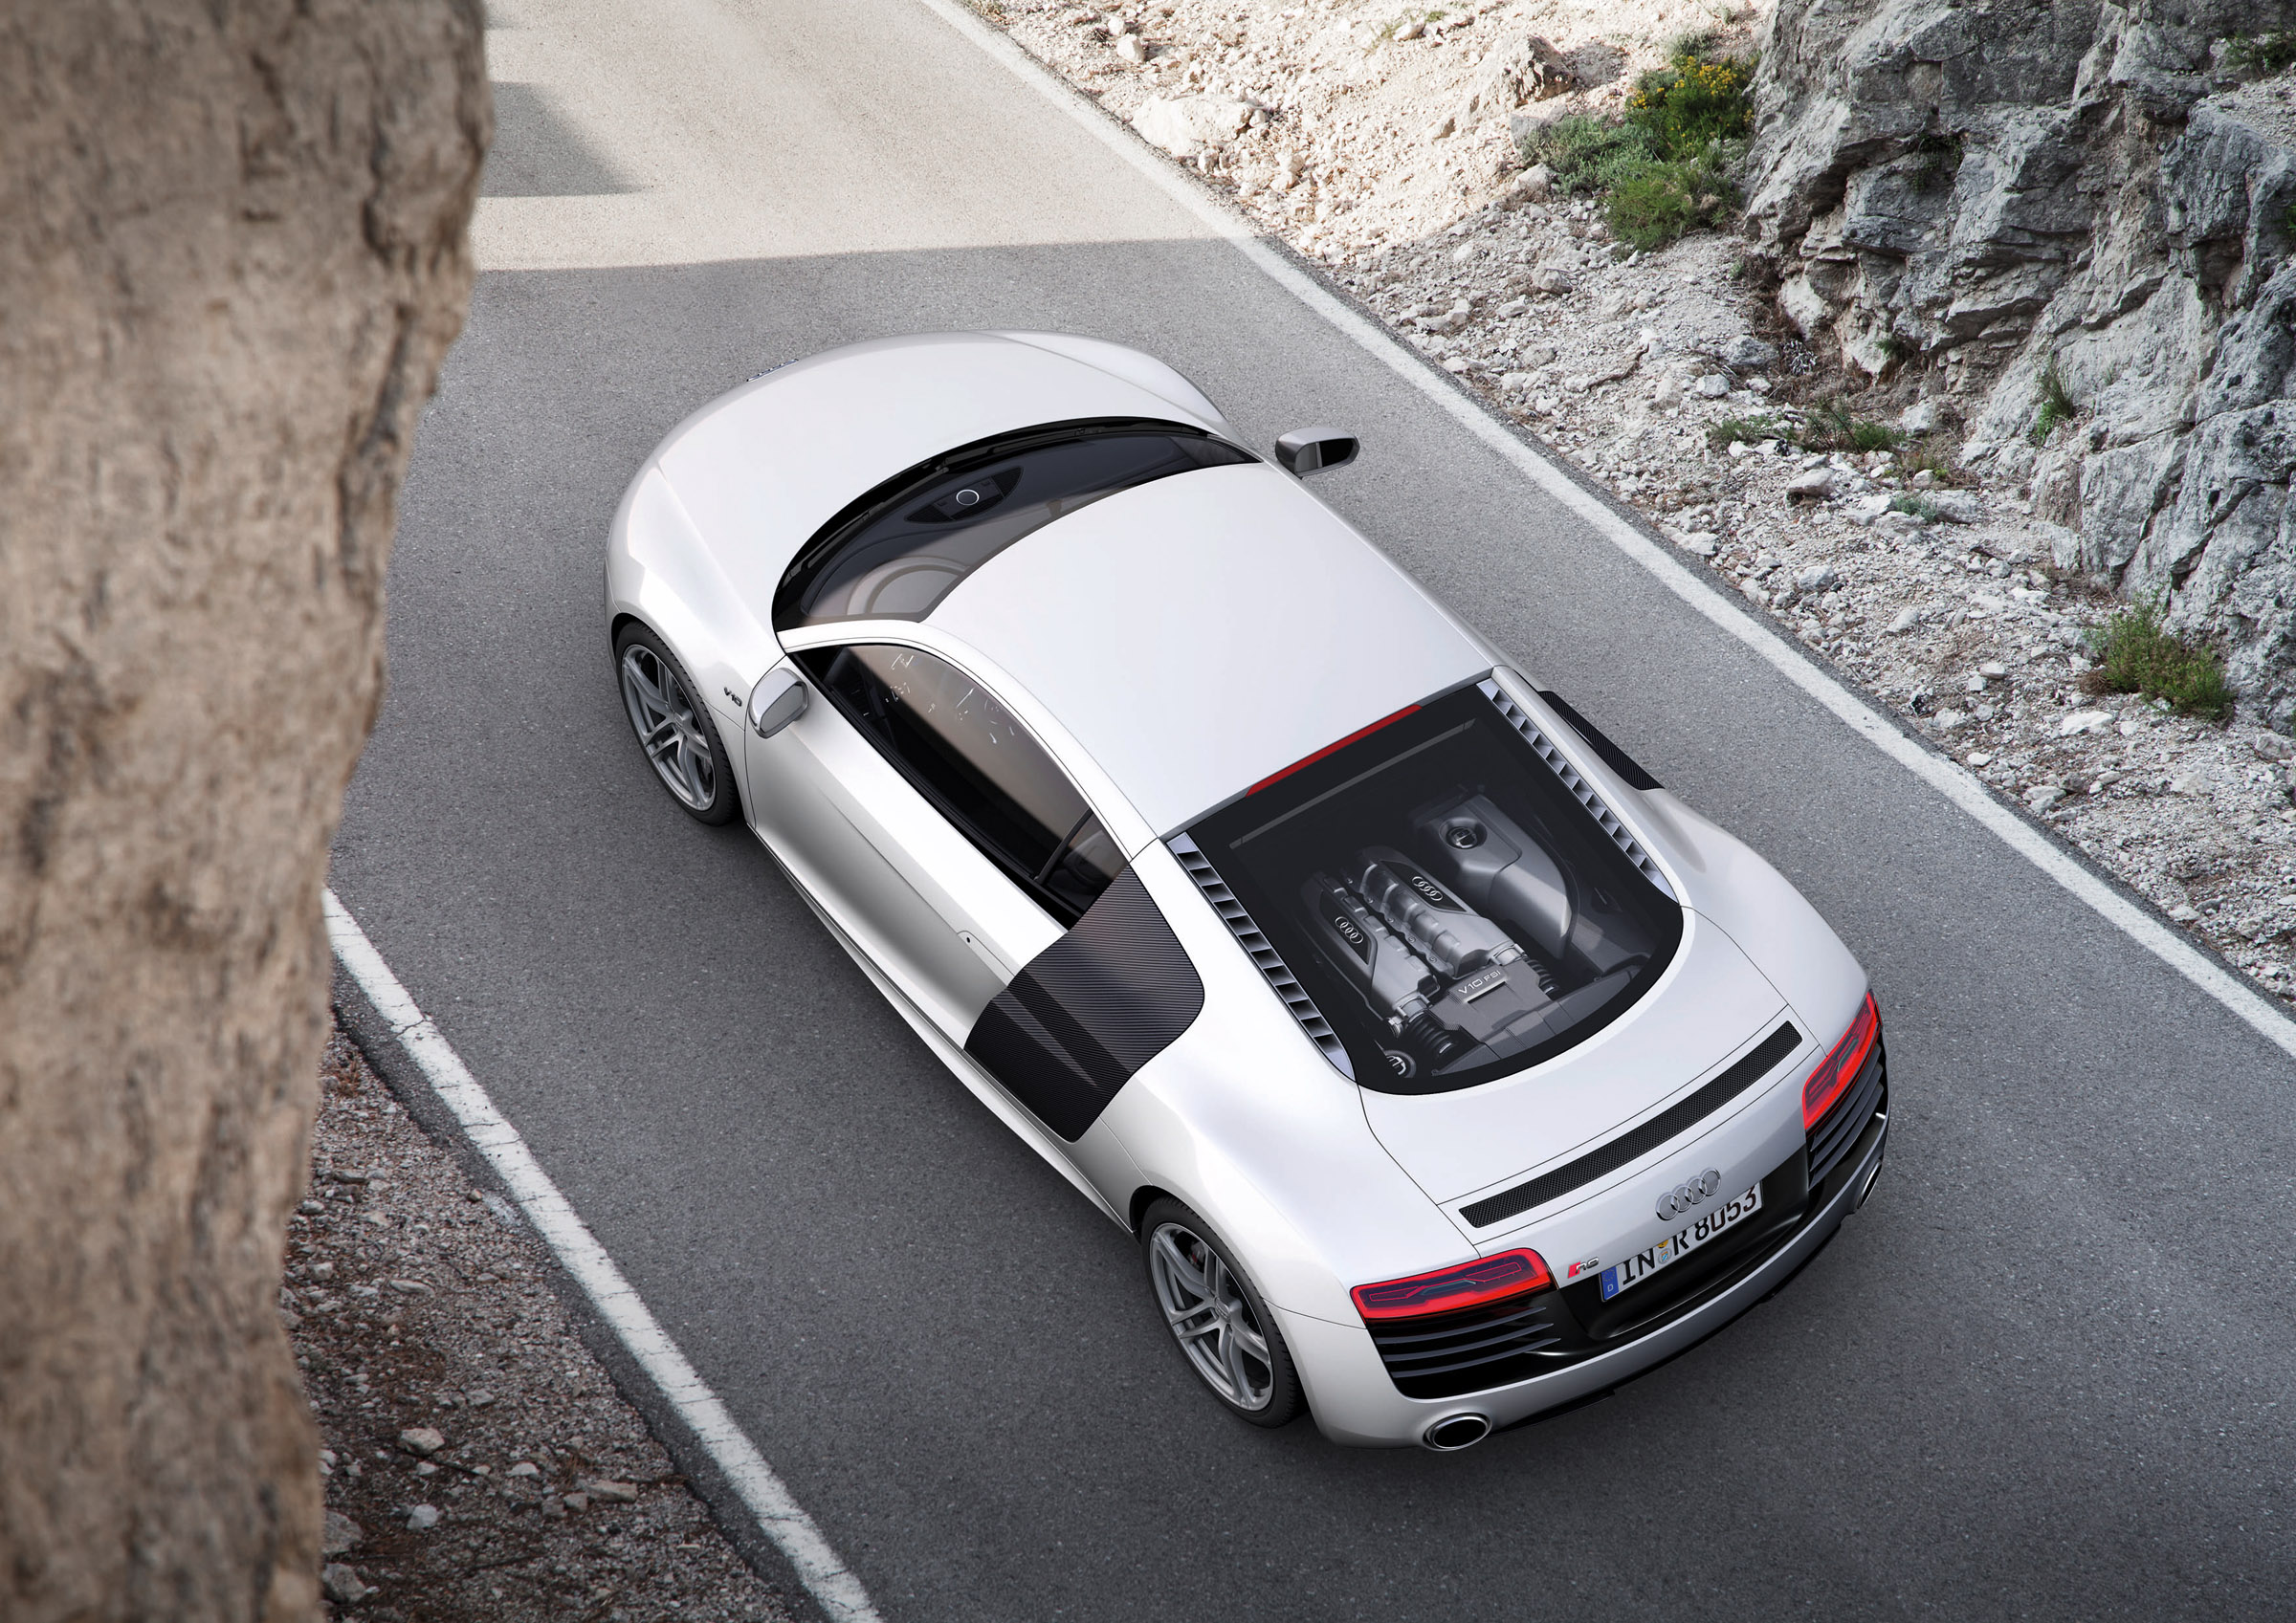 2013 Grey Audi R8 V10 Top View